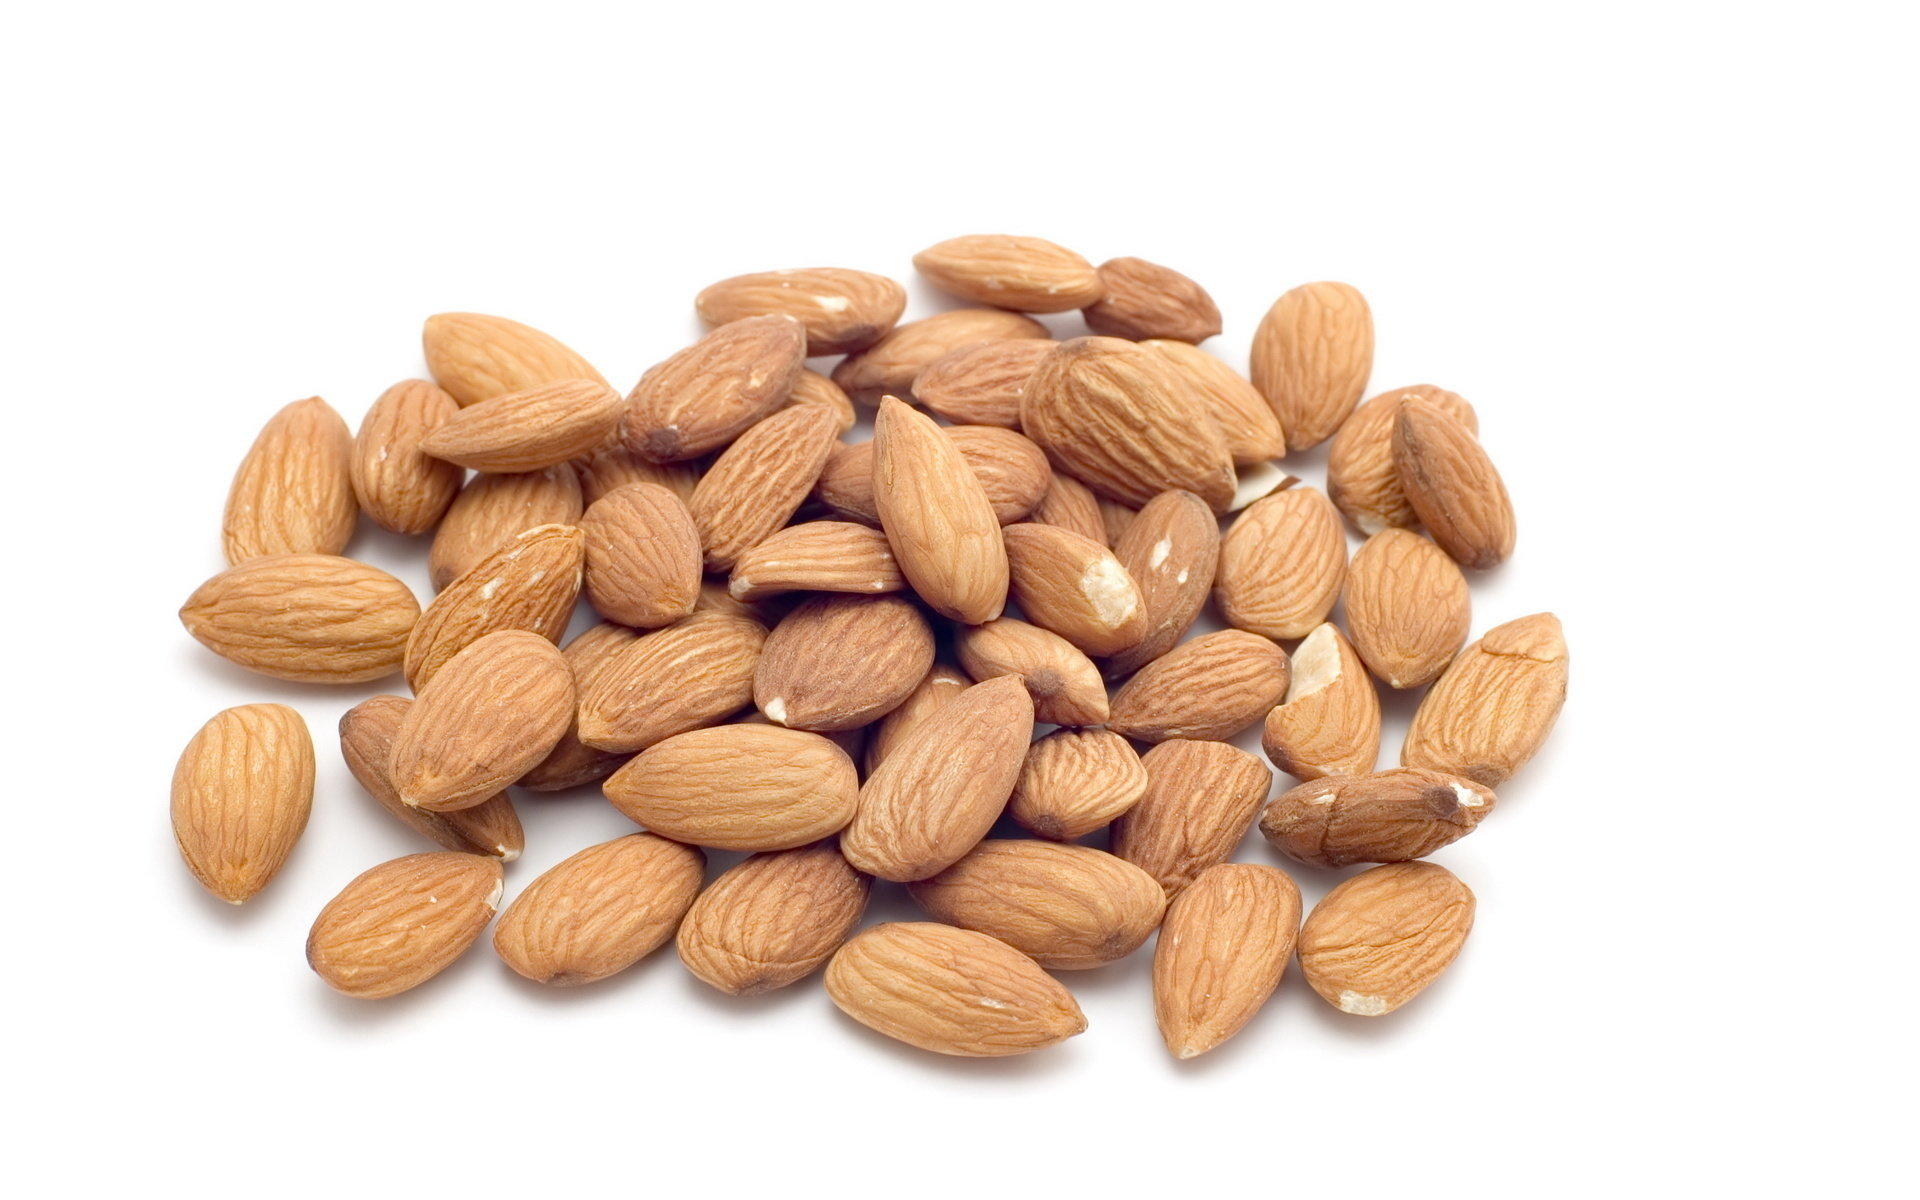 Free download Almond wallpaper ID:456085 hd 1920x1200 for computer